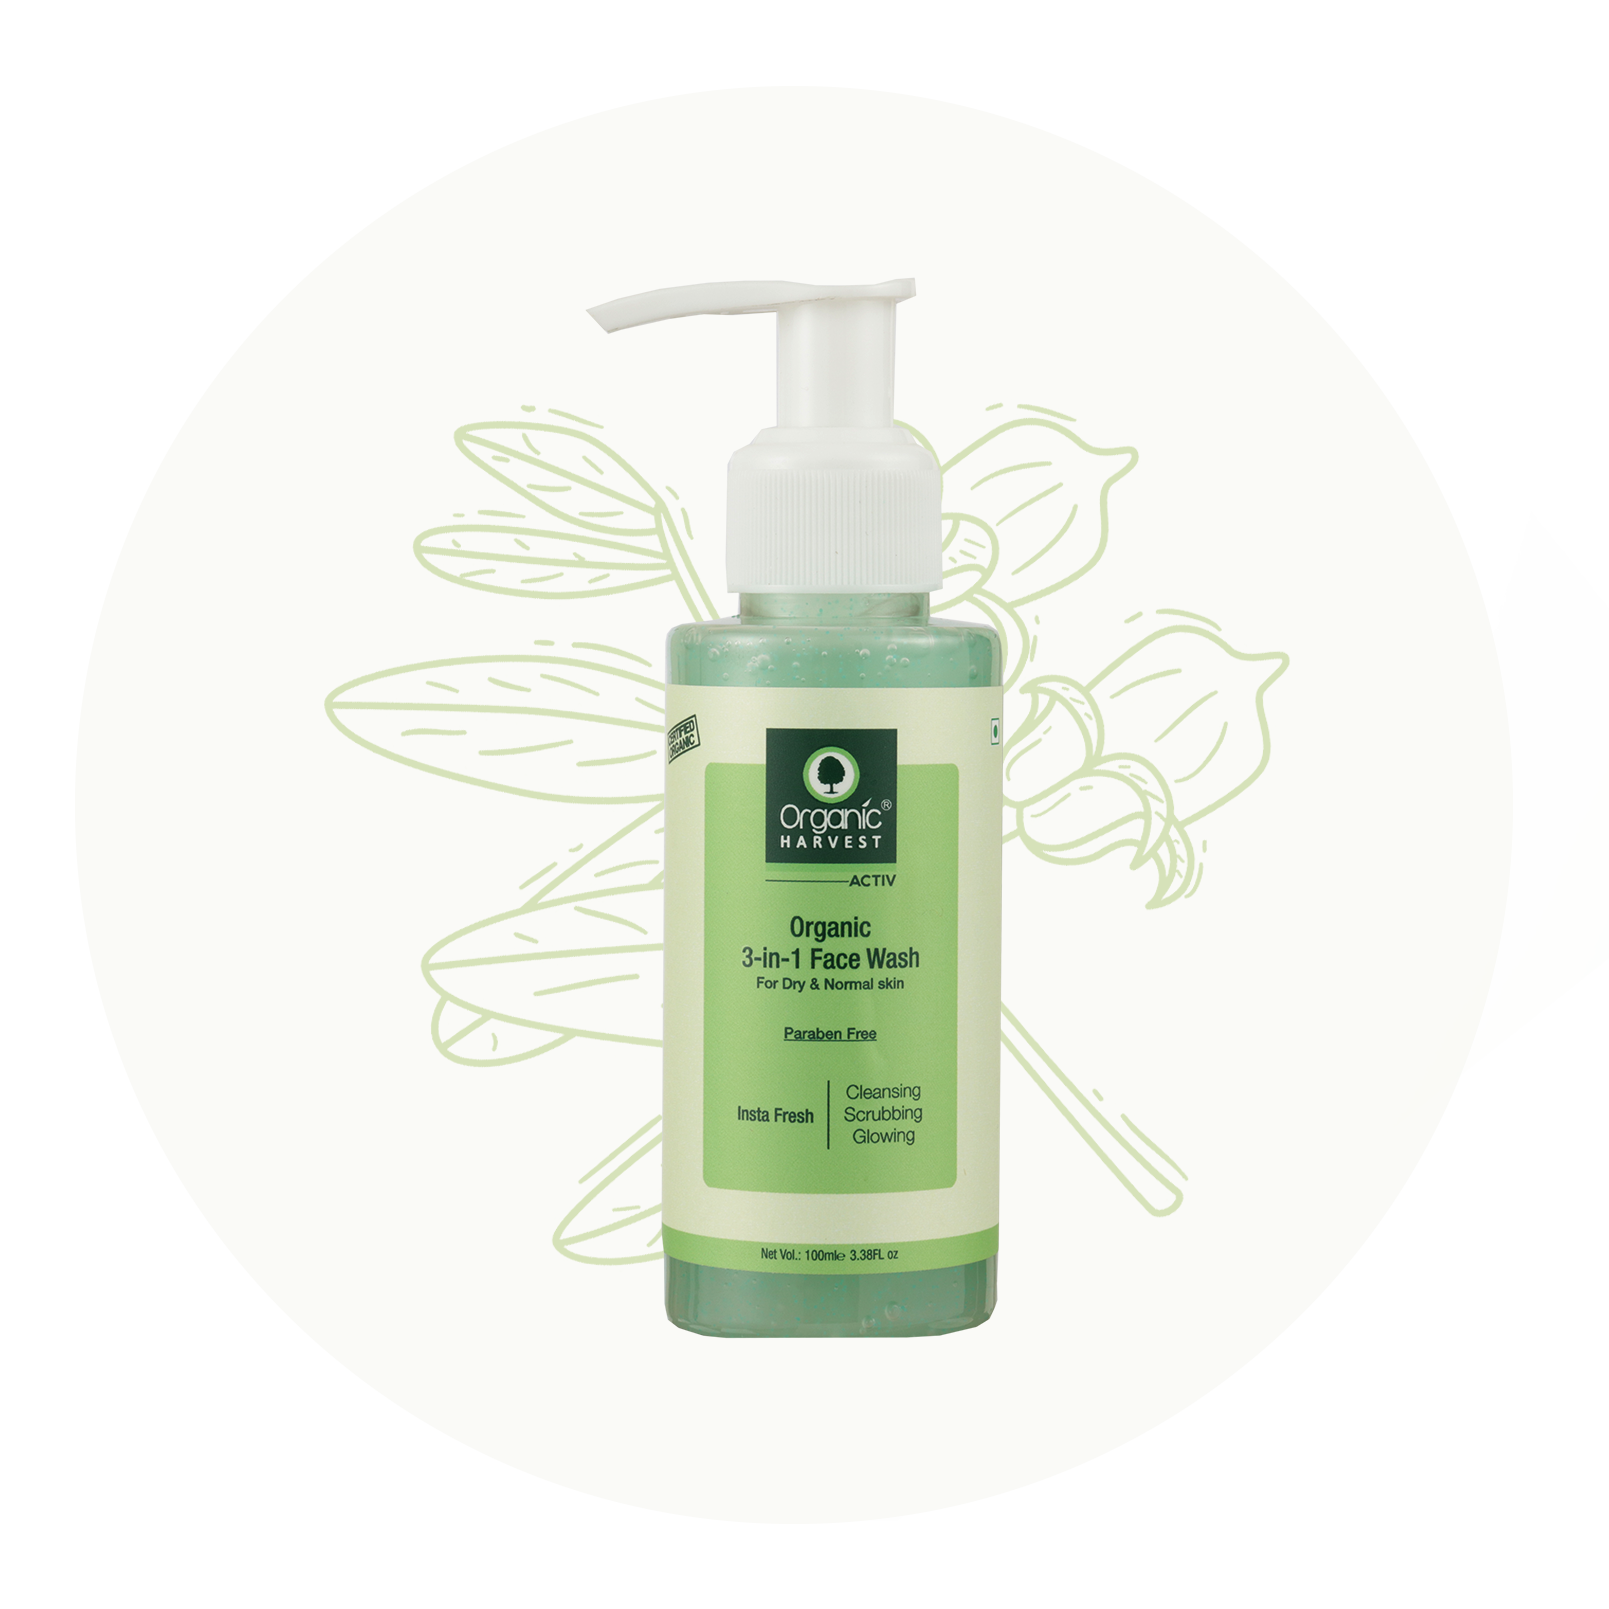 3-in-1 Face Wash for Dry Skin